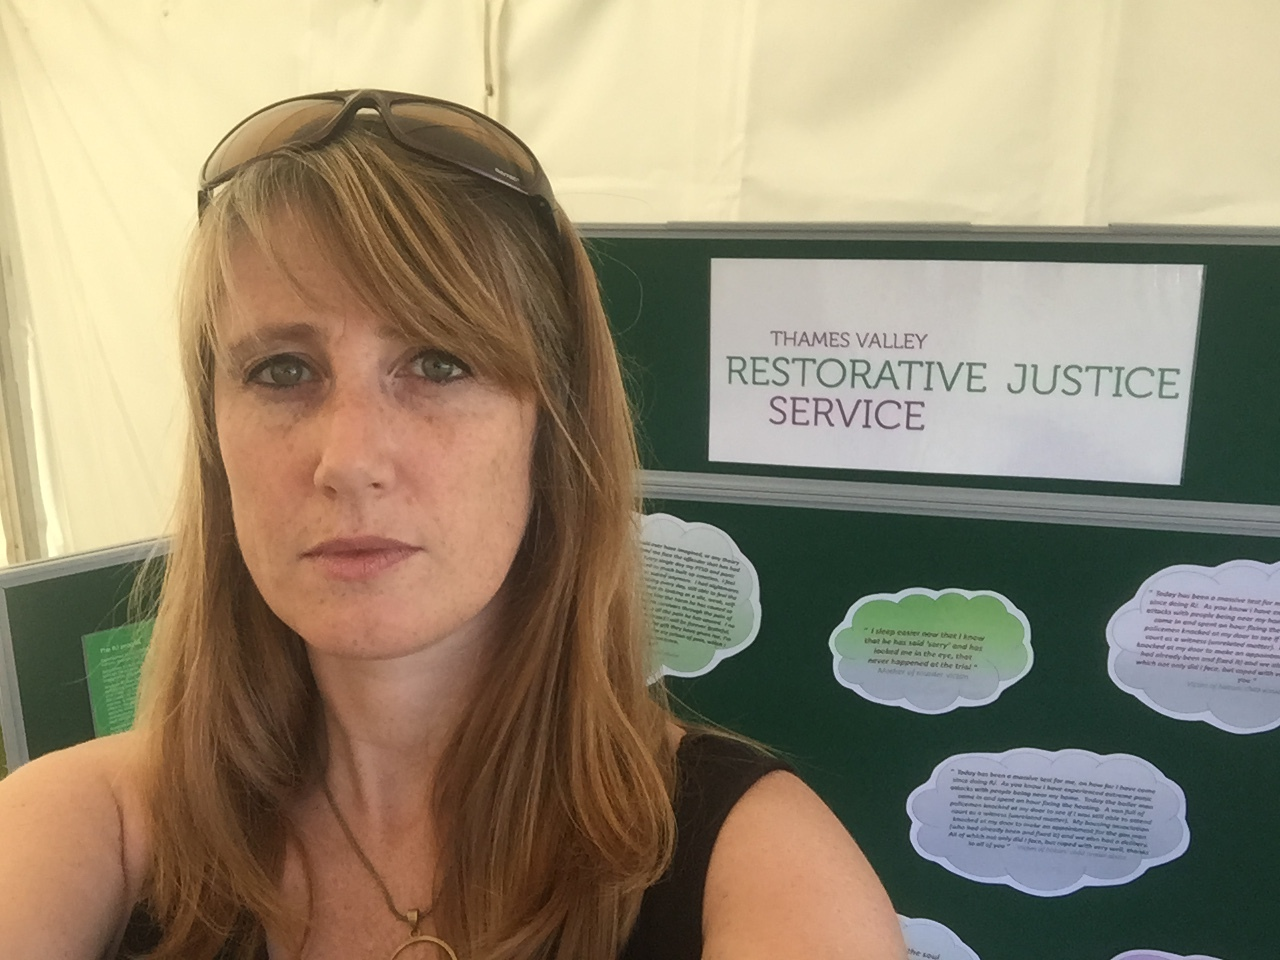 Becci is Assistant Director for RJ at Thames Valley Partnership, a follower of the 'HOPE not Hate' Campaign Group and a member of the Oxford Branch of More in Common. She has worked in supported housing, criminal justice and restorative justice, where the common threads of her passion are around creating space for unheard voices, and enabling healthy and inclusive communities.